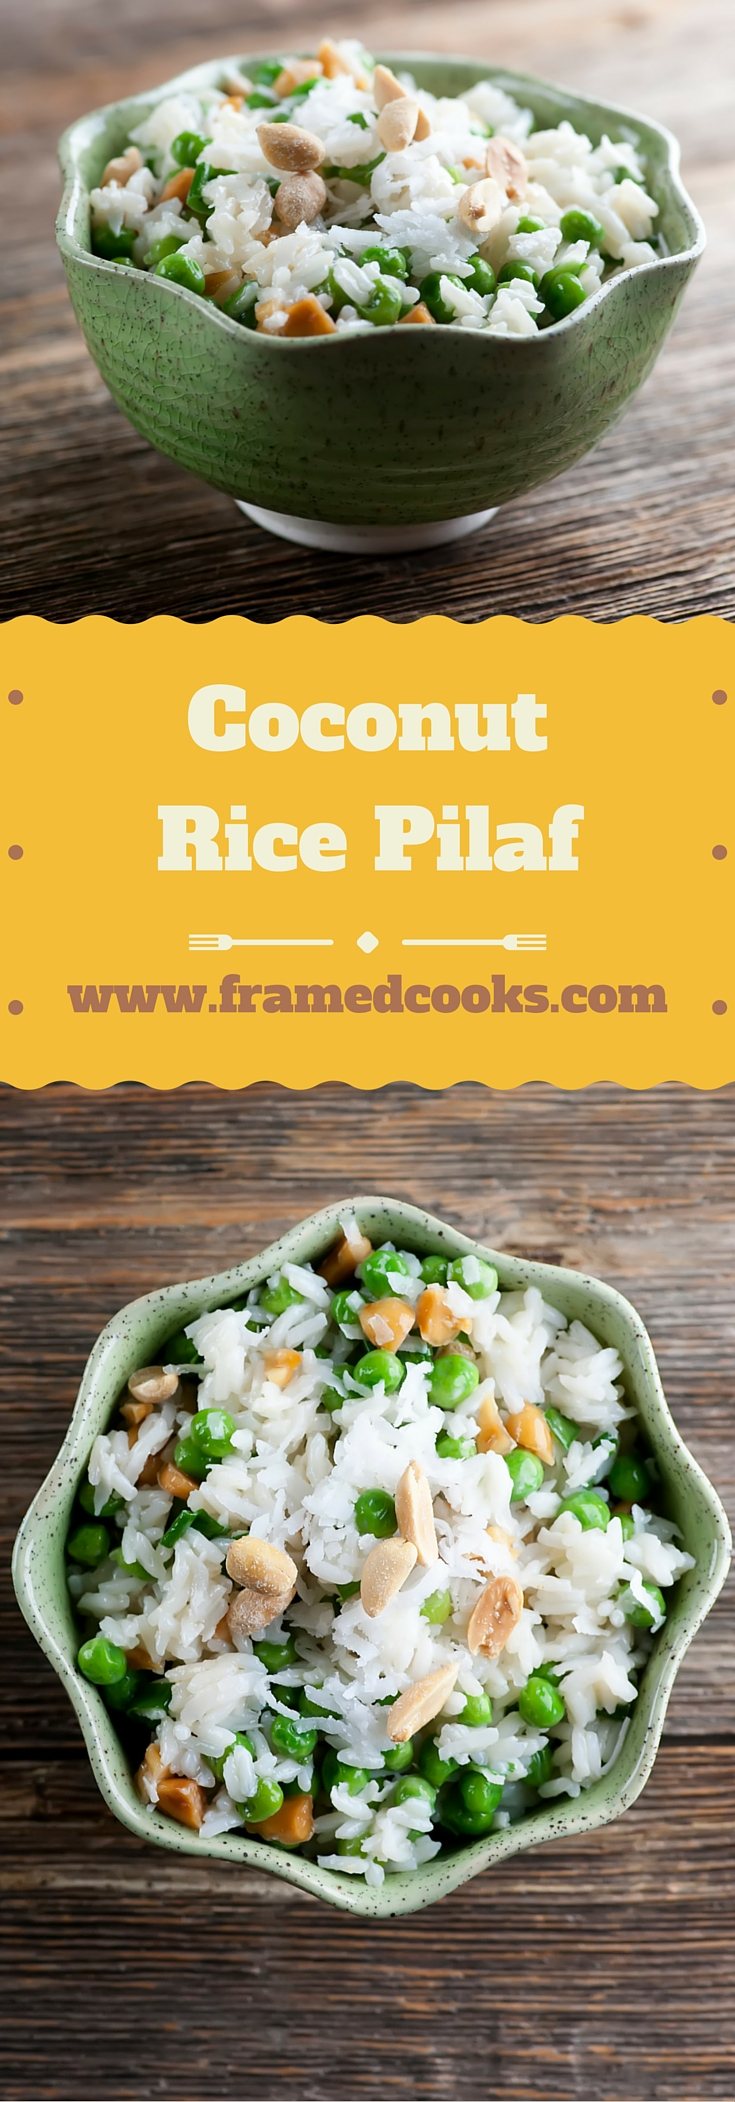 Jazz up your rice with this easy recipe for coconut rice pilaf, fill with peas and peanuts and creamy coconut flavor. A great side dish!